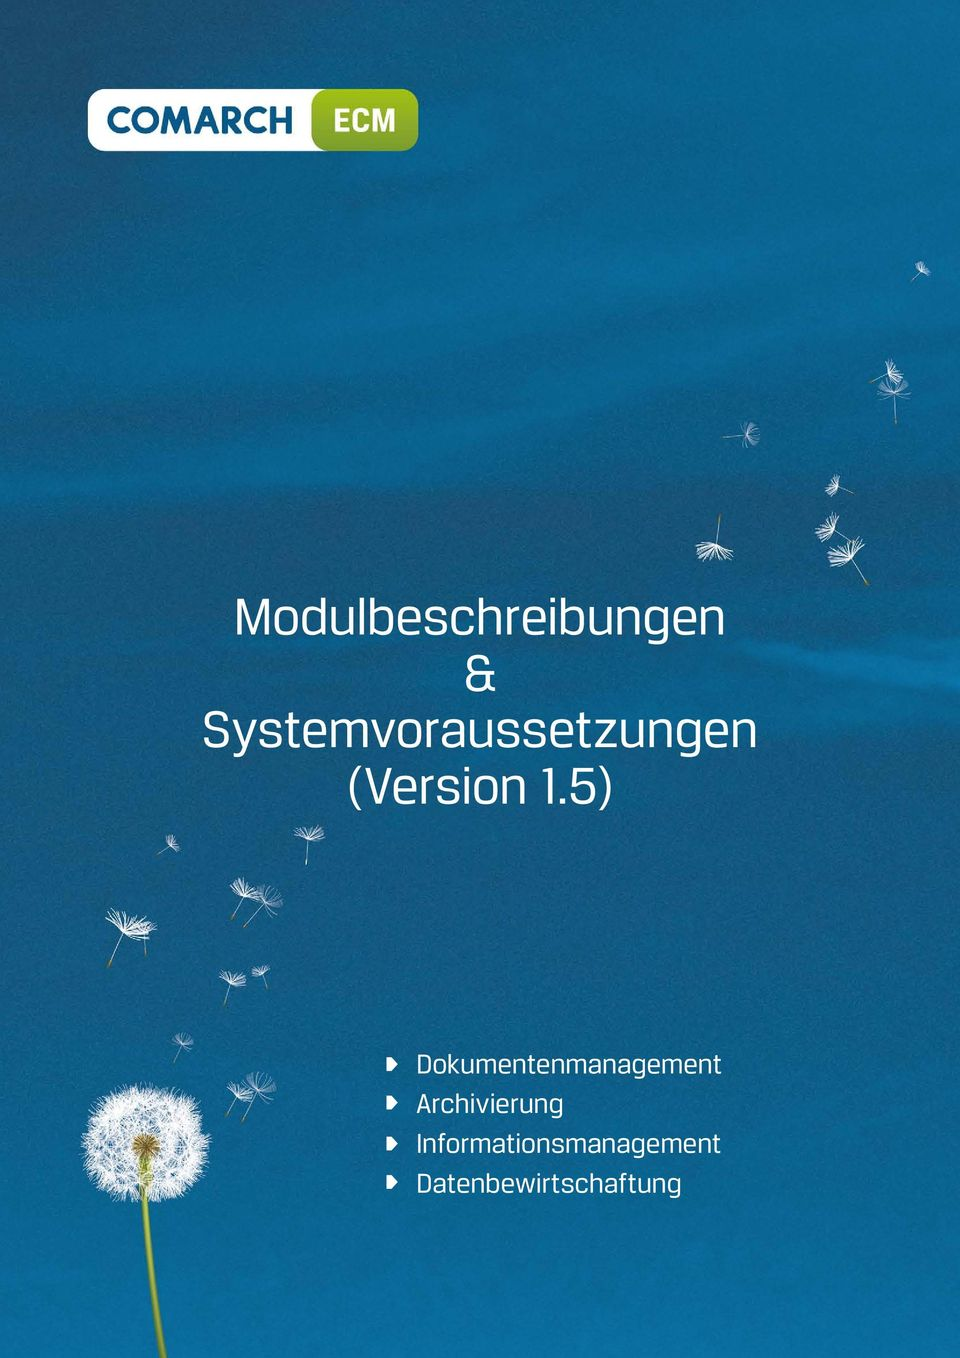 5) Dokumentenmanagement